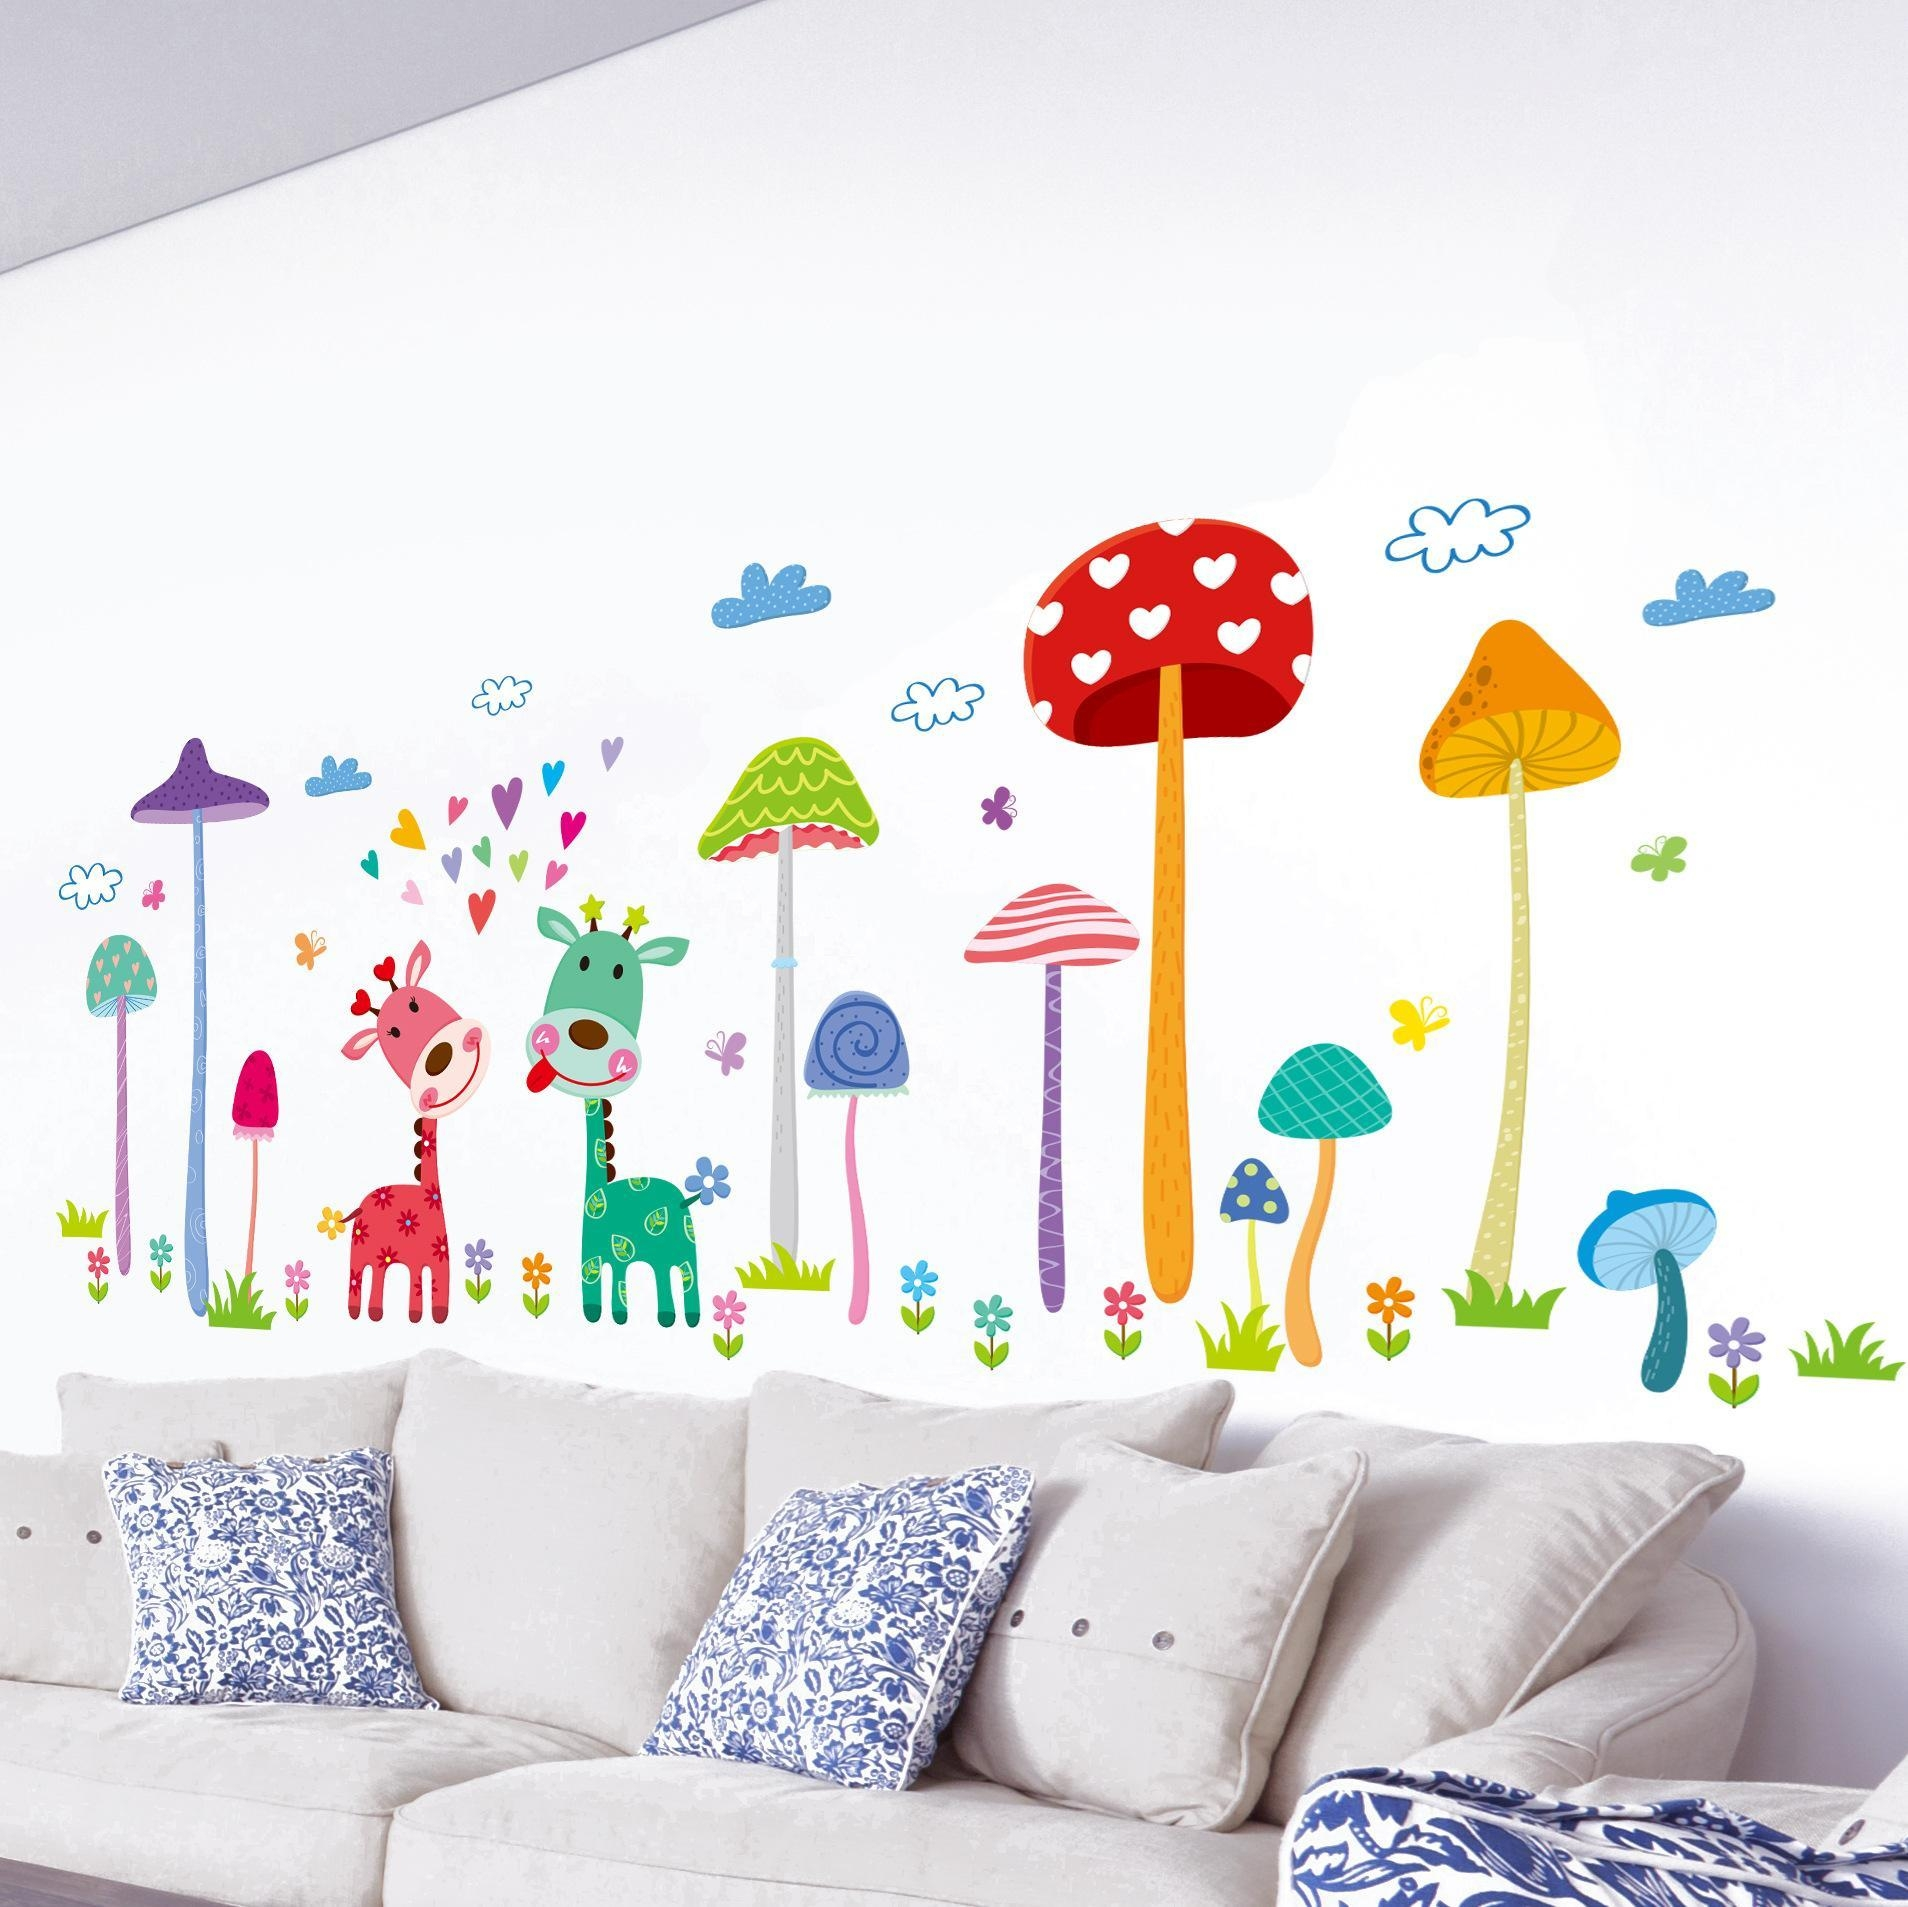 Forest Mushroom Deer Home Wall Art Mural Decor Kids Babies Room In Wall Art For Kindergarten Classroom (View 1 of 20)